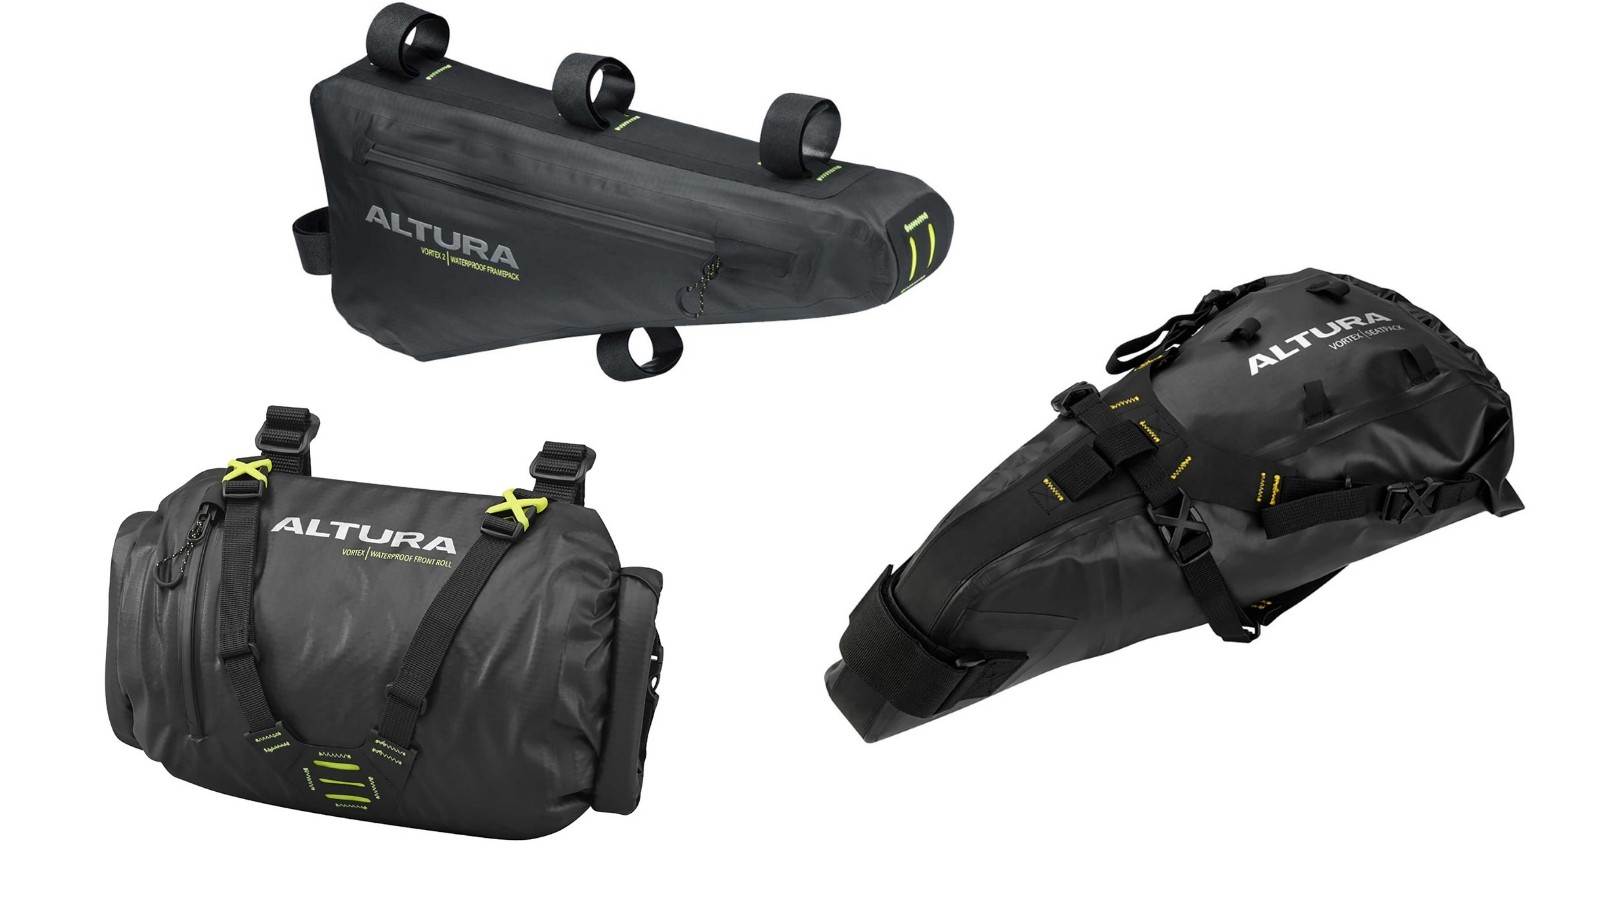 Altura's Vortex bikepacking bags are a more affordable option